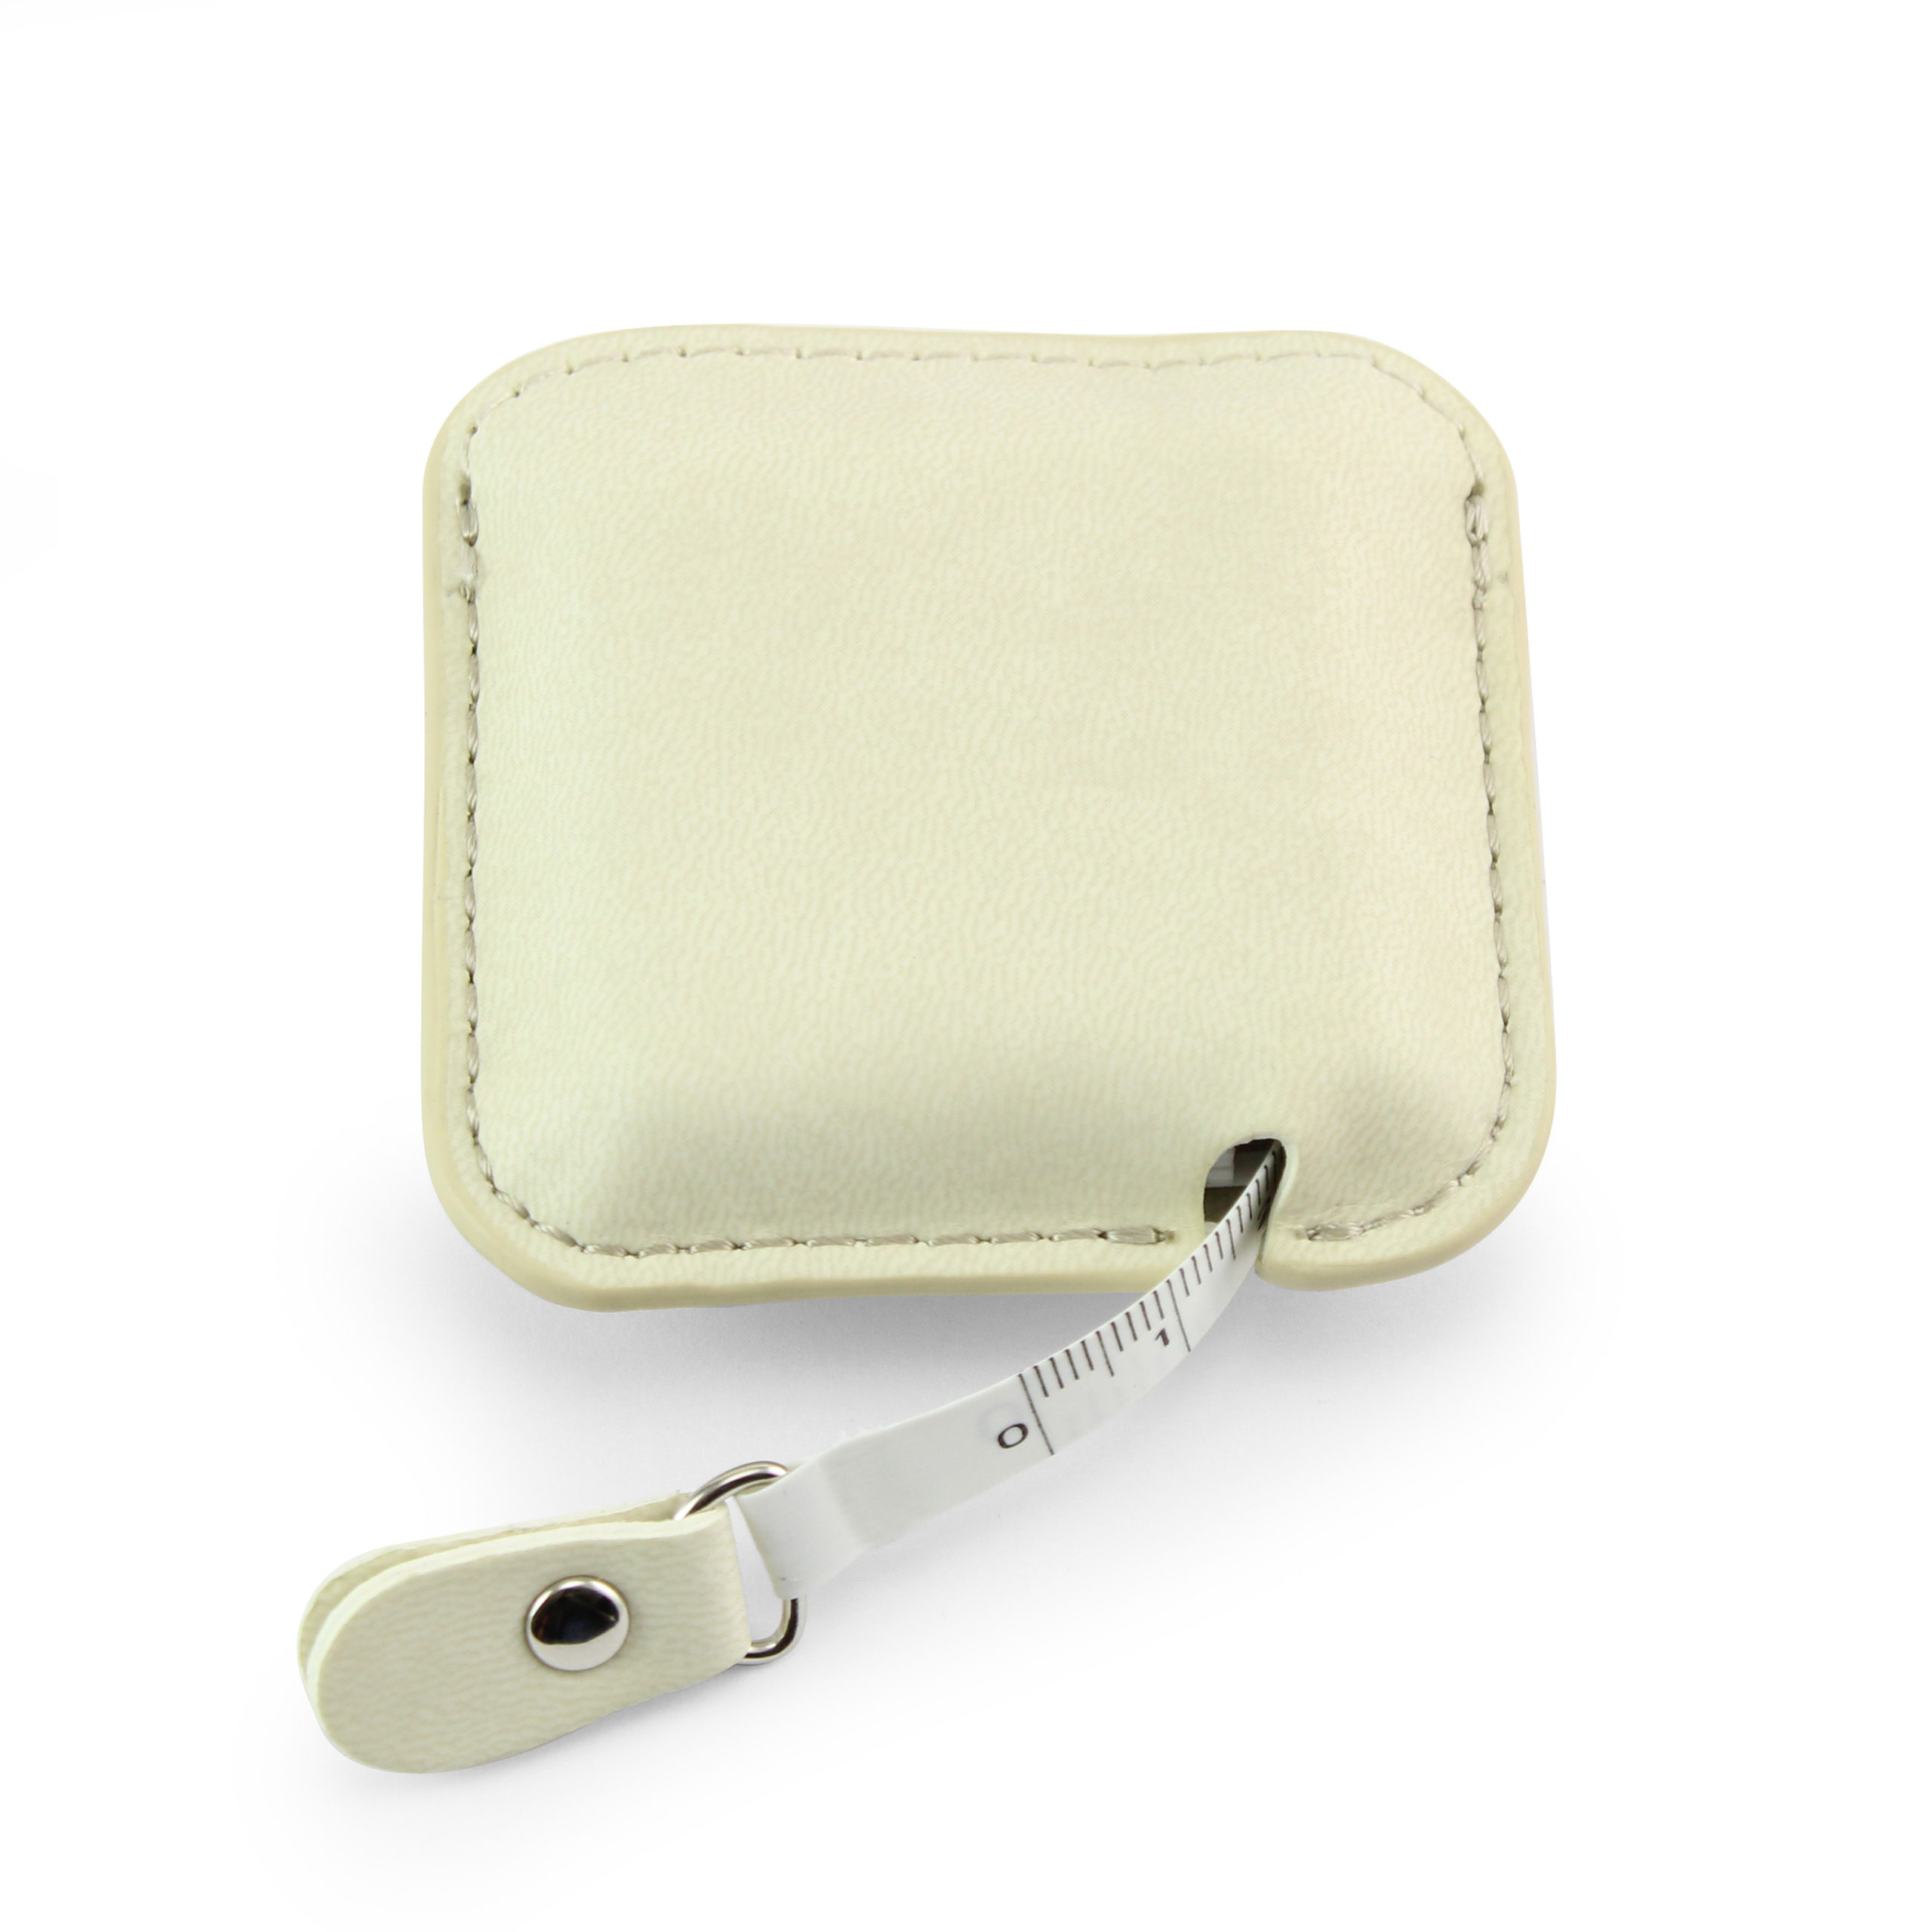 Ivory Square Retractable Tape Measure, in a soft touch vegan finish.